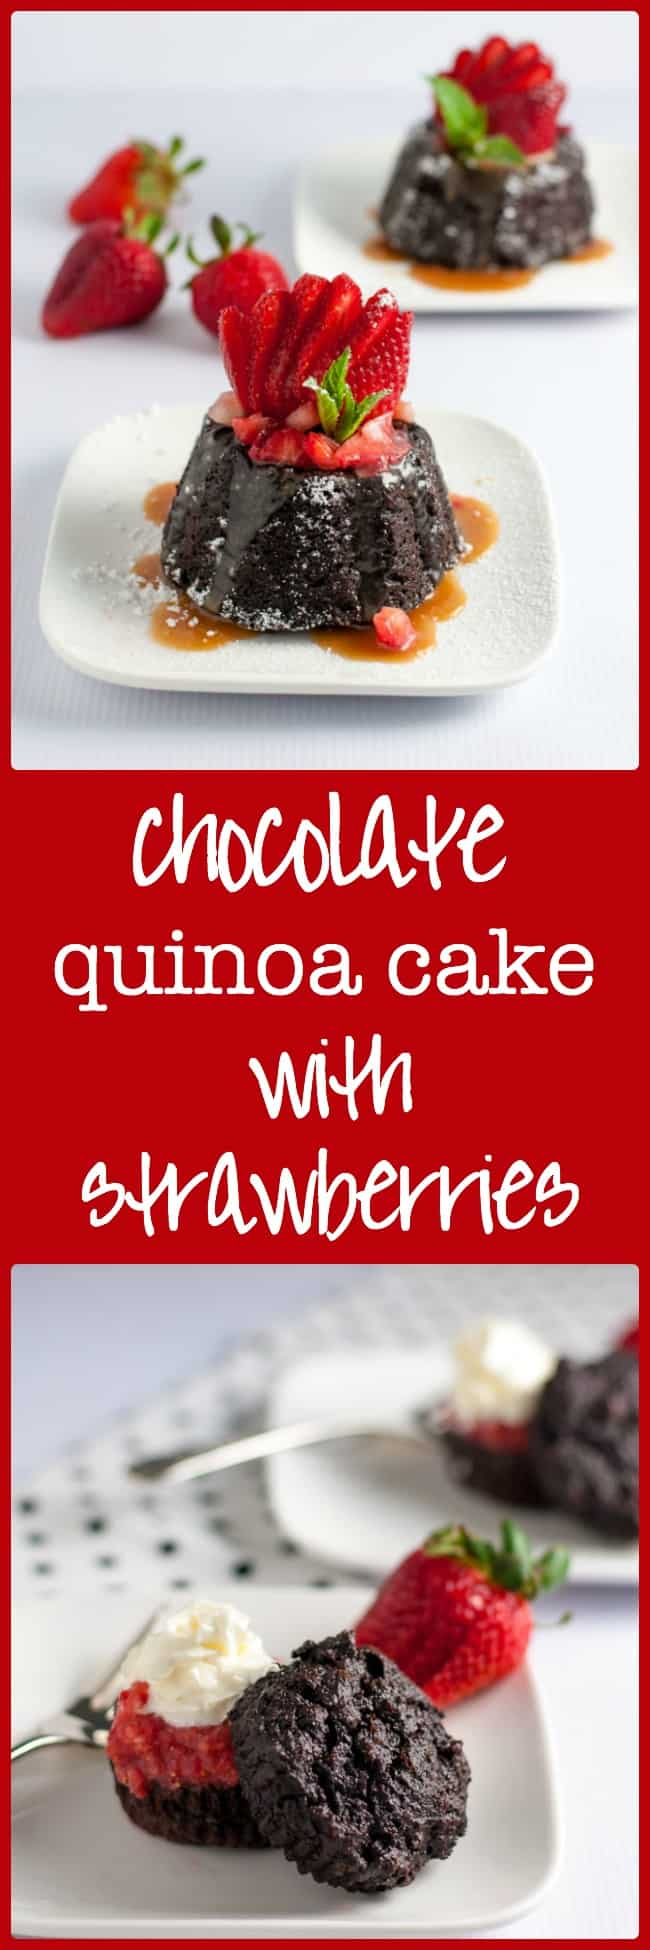 Chocolate Quinoa Mini Bundt Cakes with Strawberries and Caramel Sauce. Looking for Spring dessert ideas? These are gluten-free, dairy-free and delicious! Rich chocolate flavour, fresh strawberries and sweet caramel sauce with a paleo option!  www.flavourandsavour.com